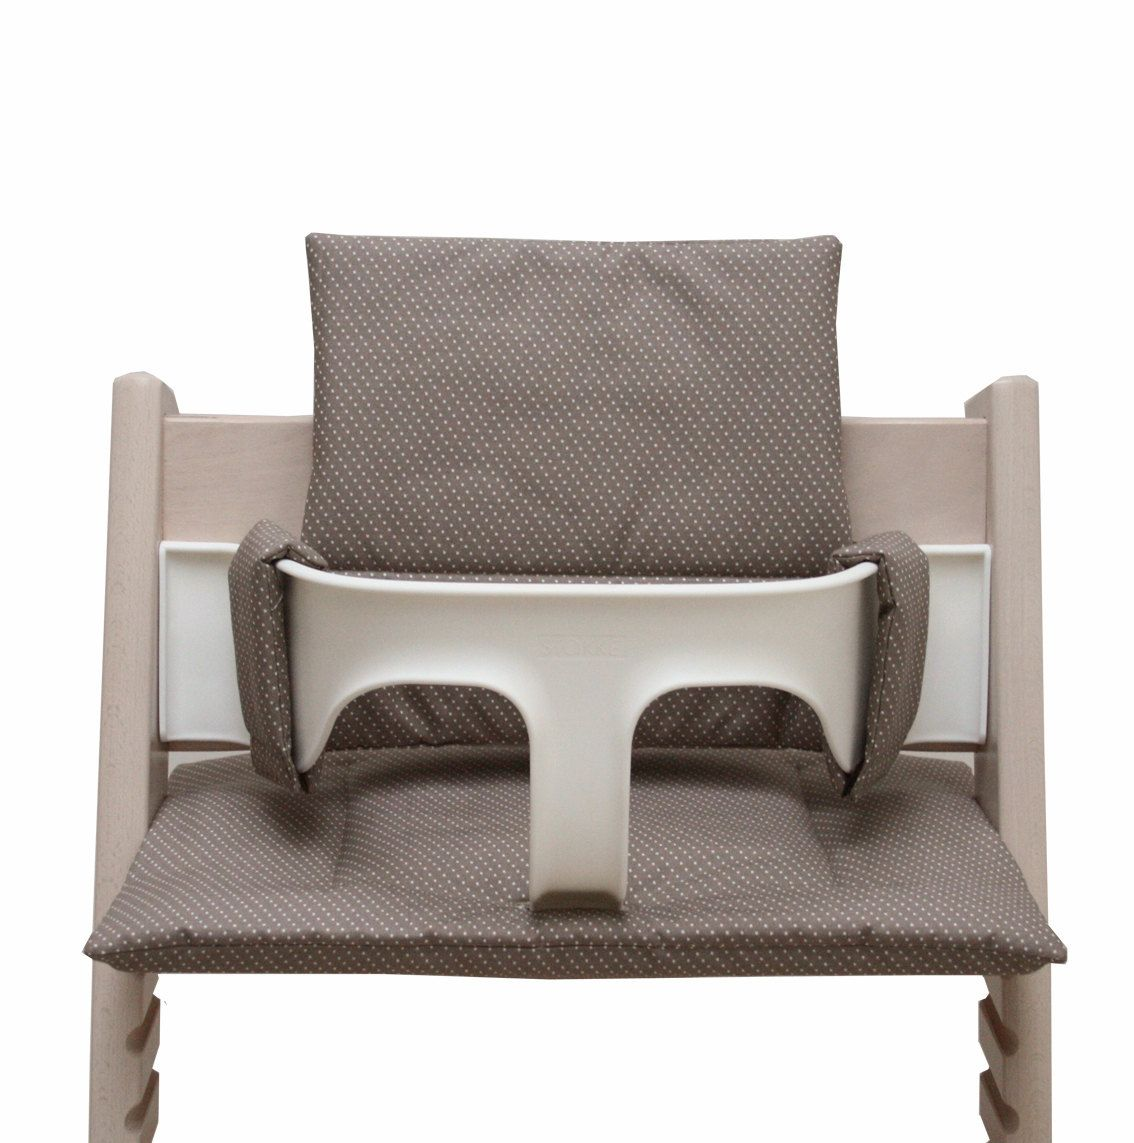 Stokke Sitzkissen Abwaschbar Coated Cushion For Tripp Trapp High Chair Taupe With Dots Tripp